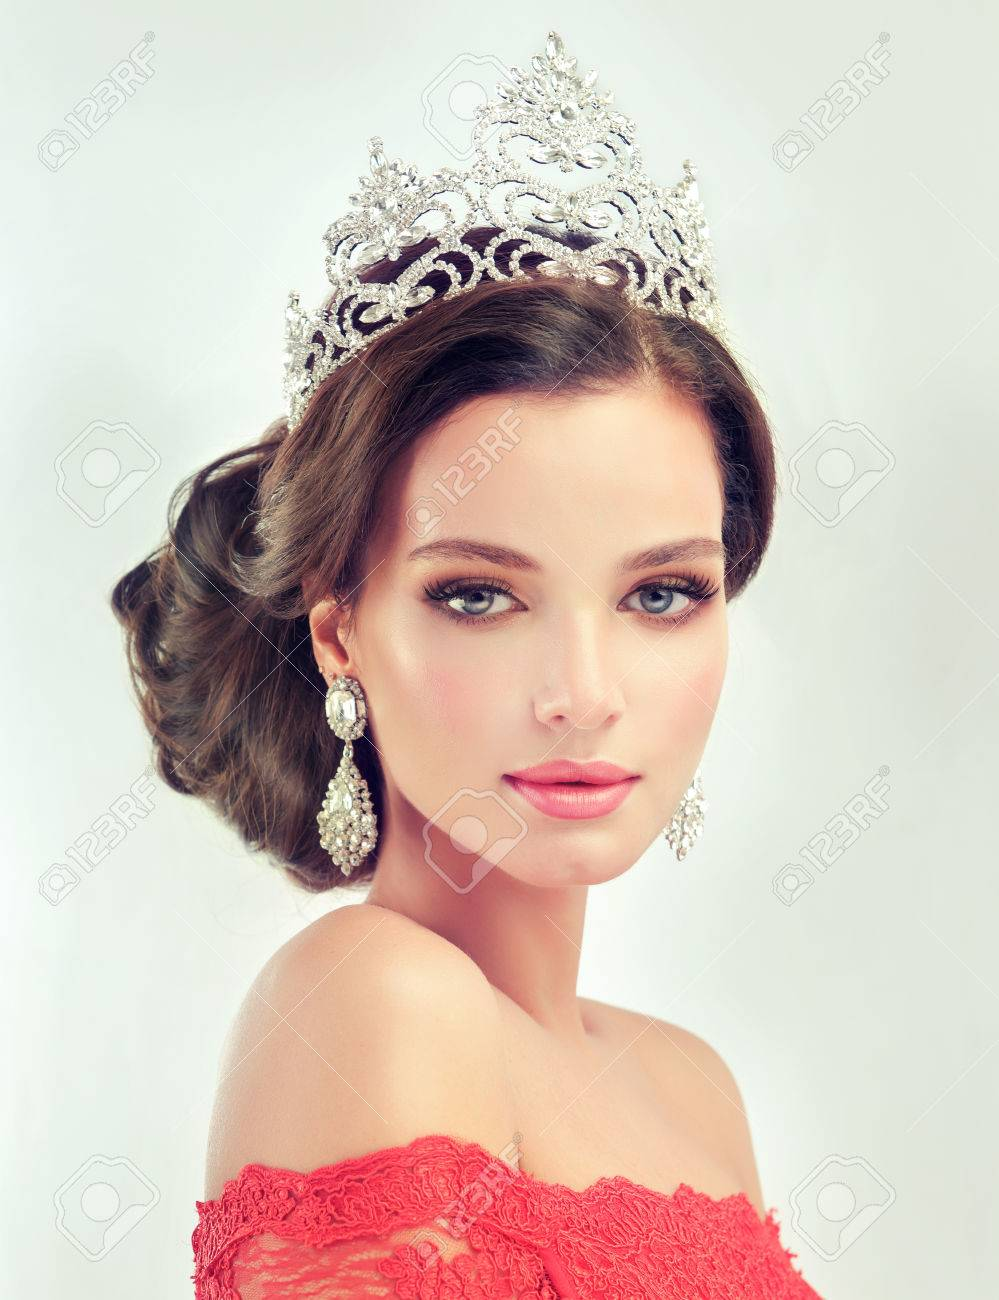 Young, gorgeous model in a delicate make up, dressed in a red gown and crown on her head. Misty, romantic look. Wedding and evening style. - 60303270